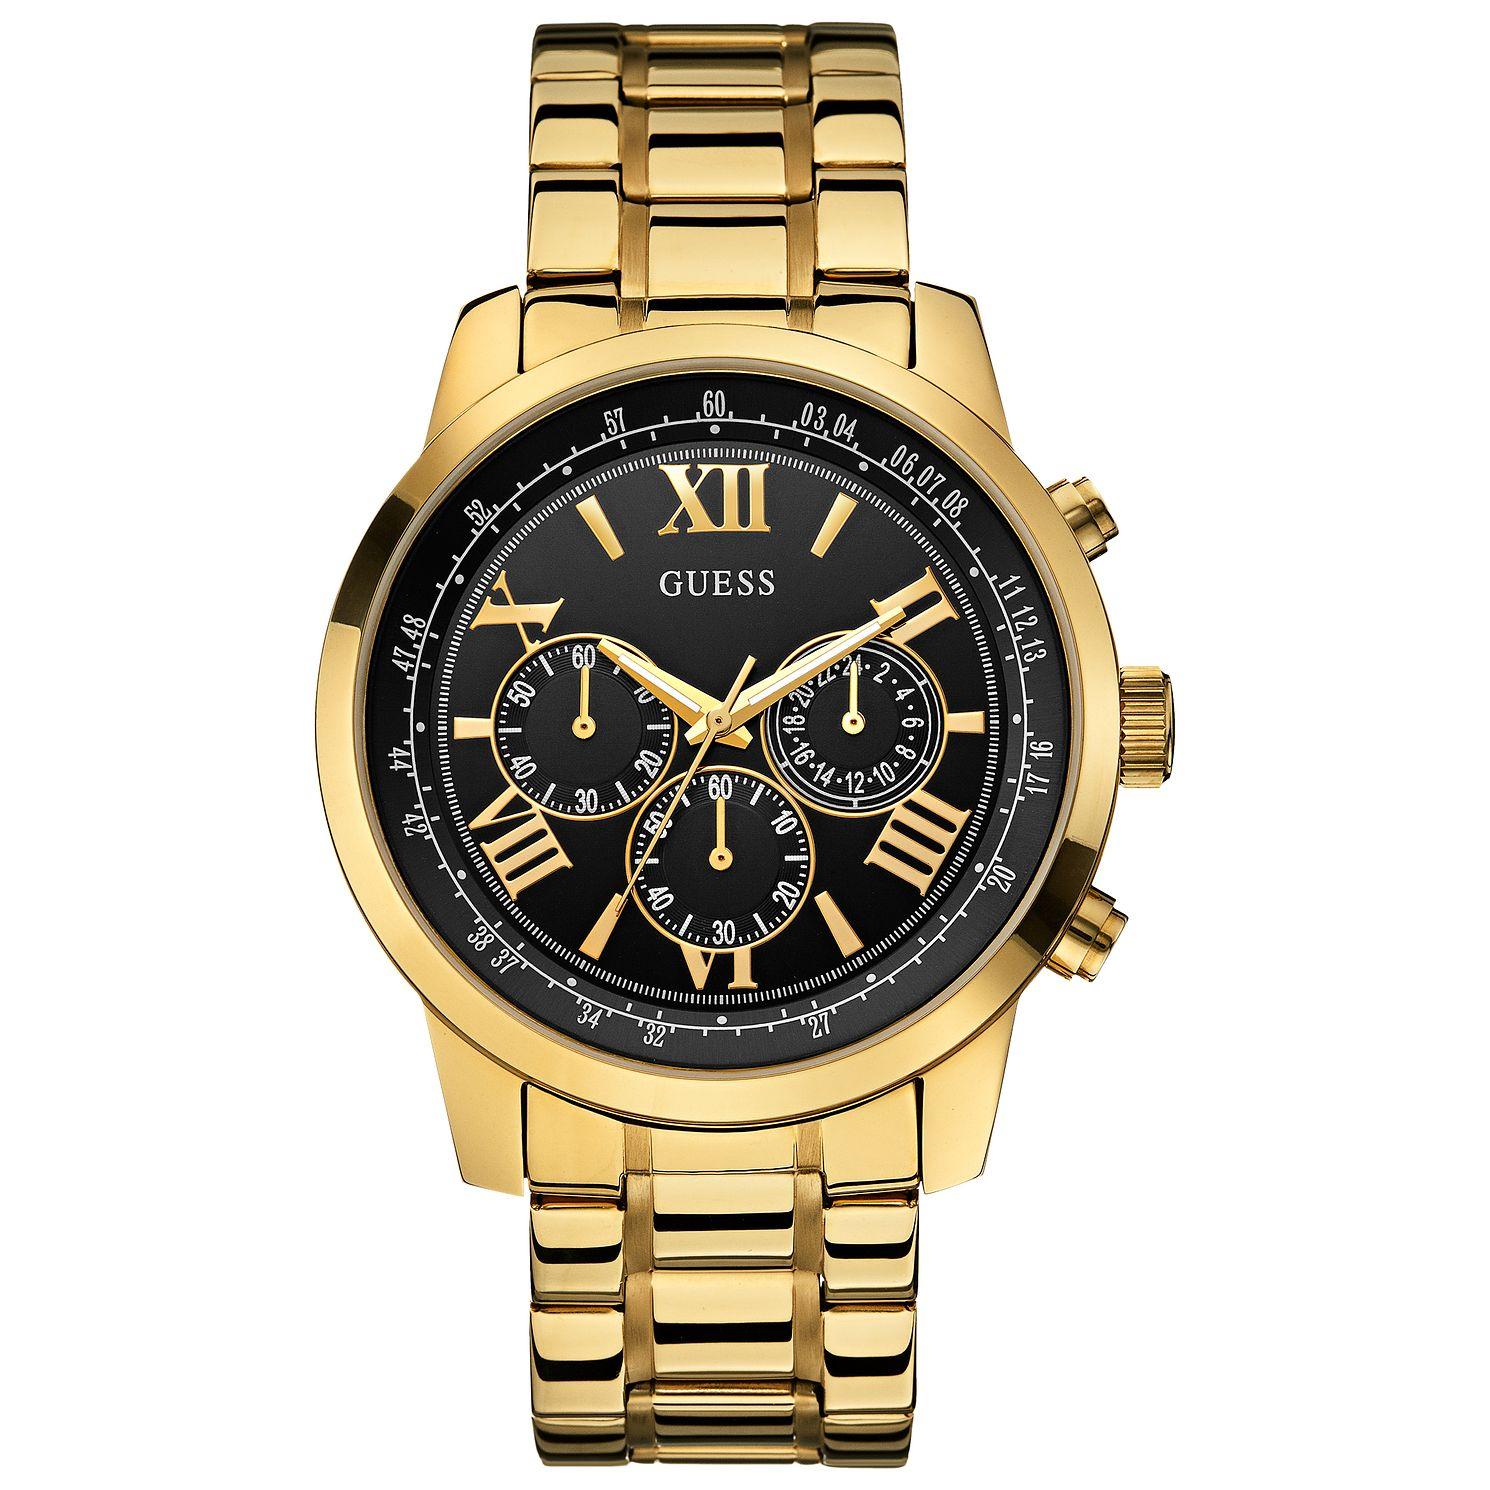 Guess Men's Yellow Gold Plated Bracelet Watch - Product number 3427854